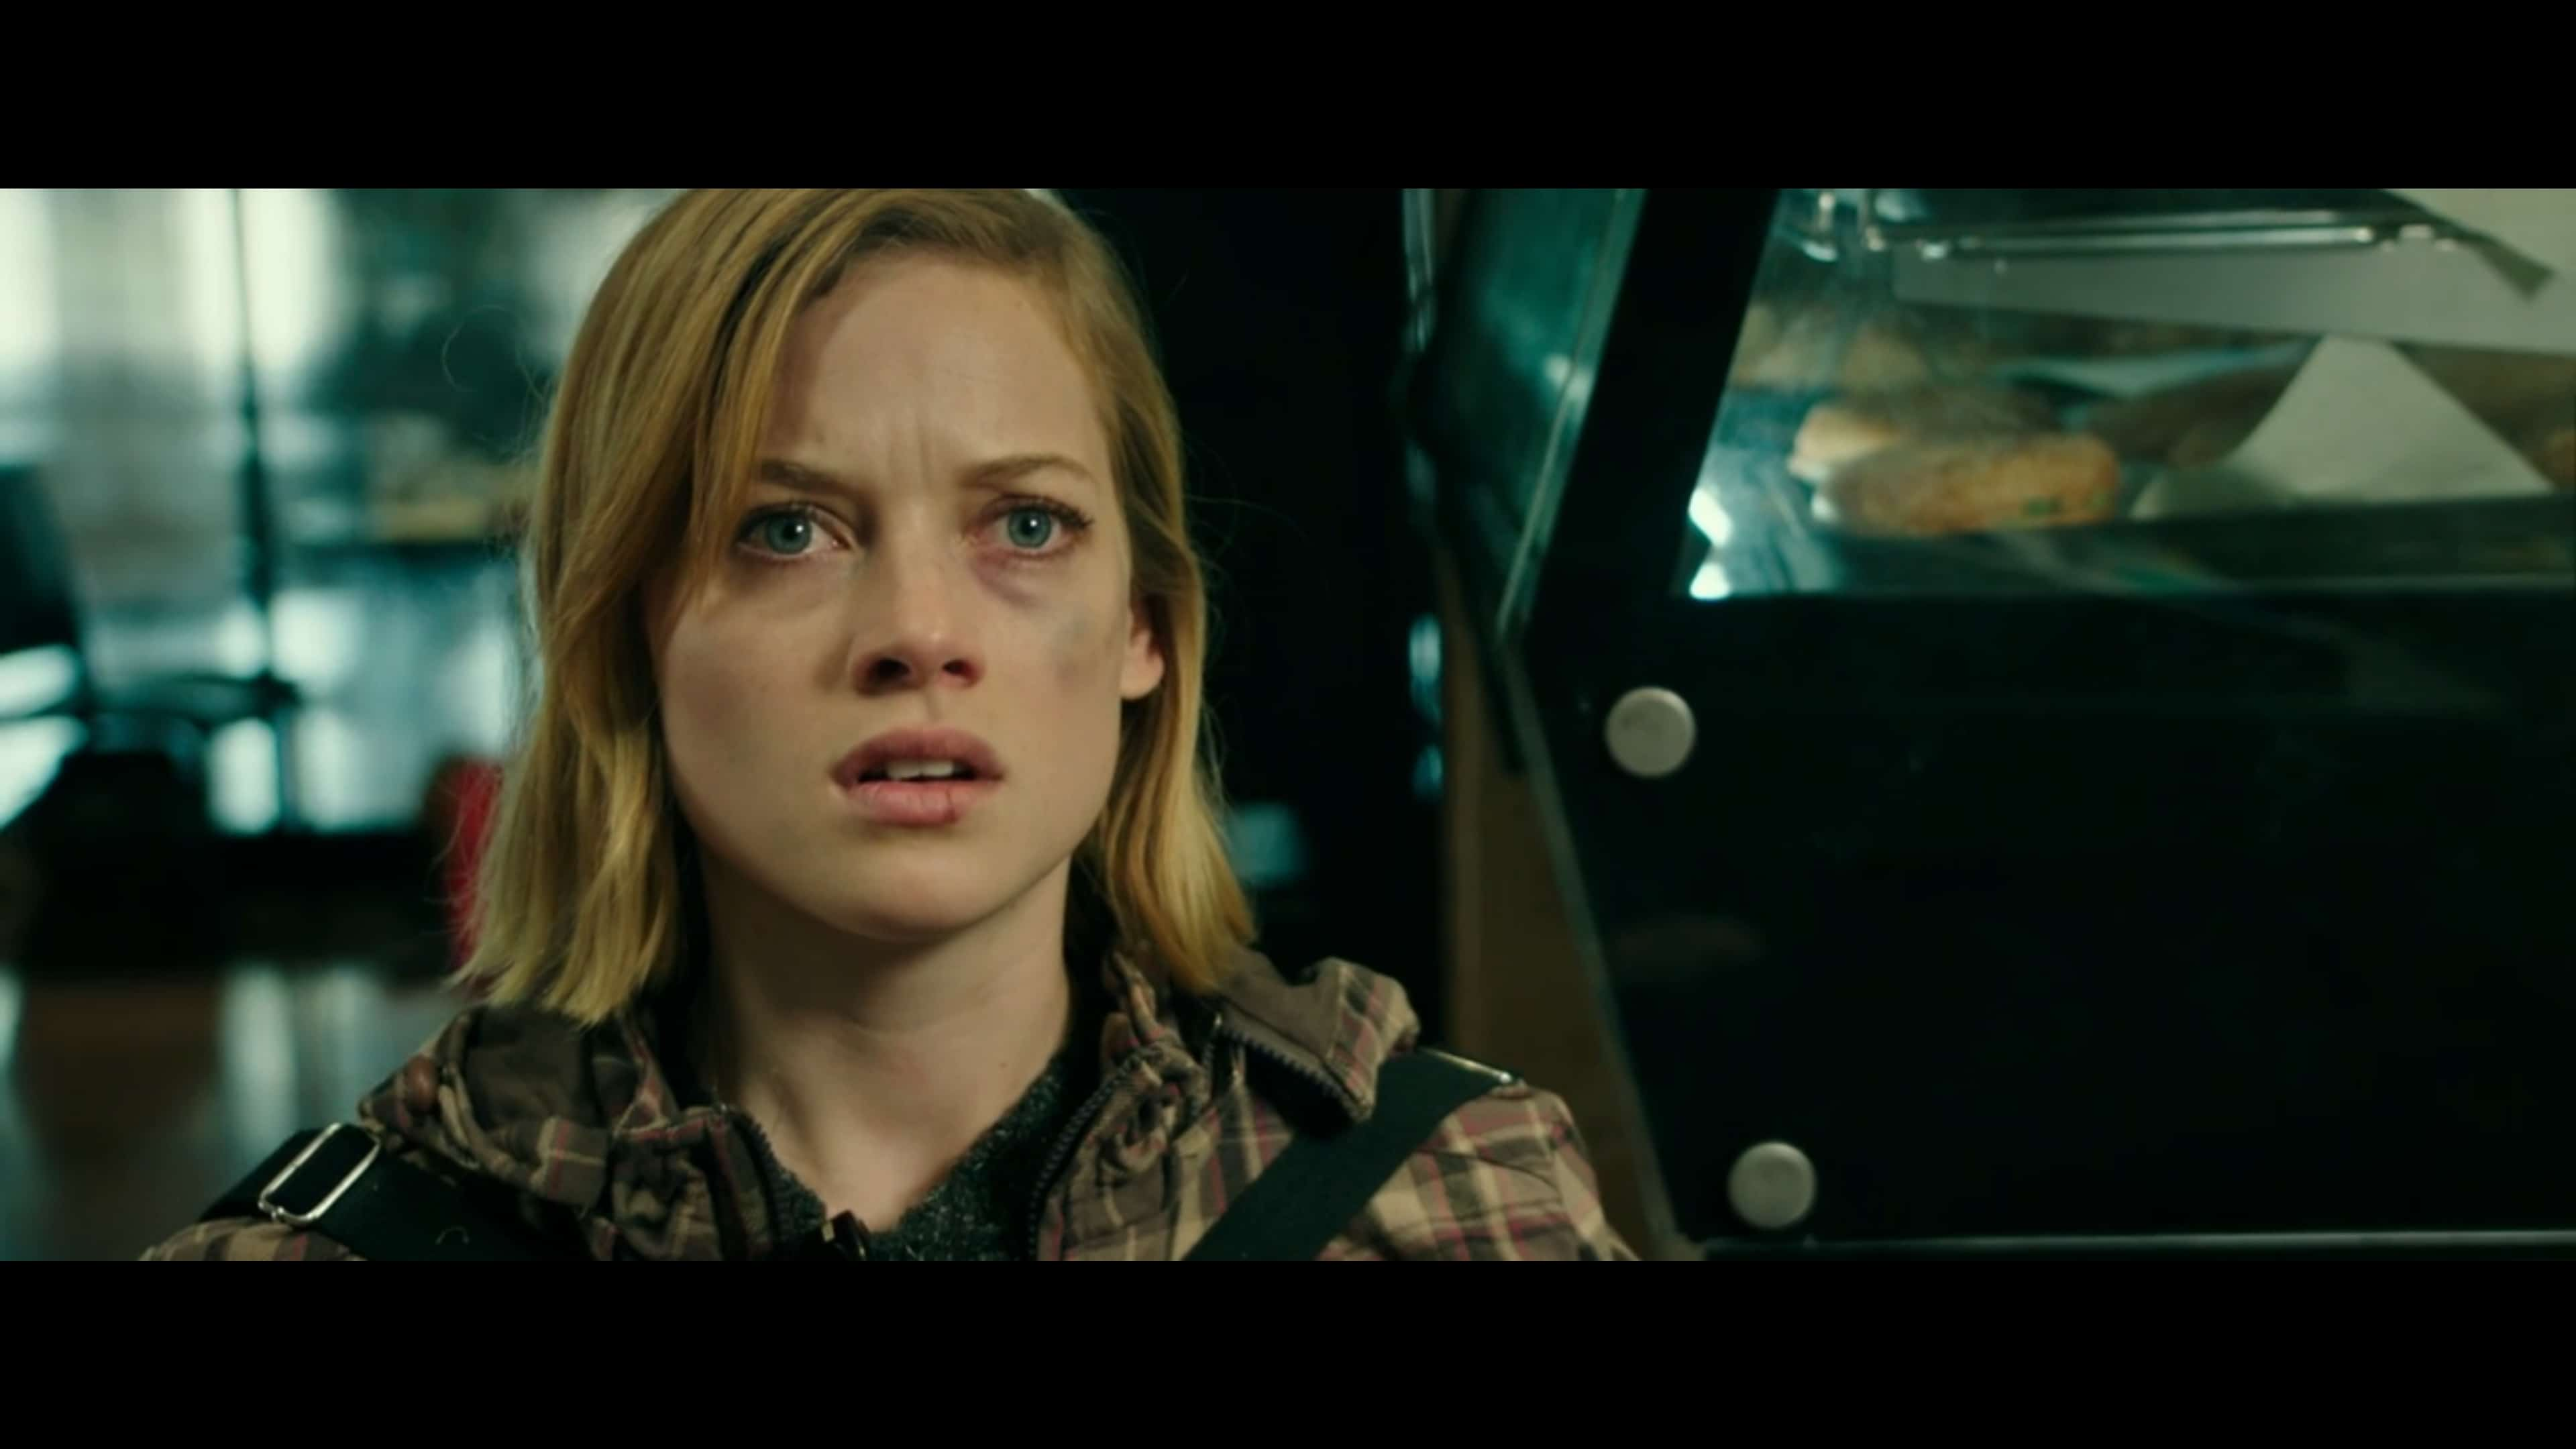 Rocky (Jane Levy) learning The Blind Man lived after all that happened